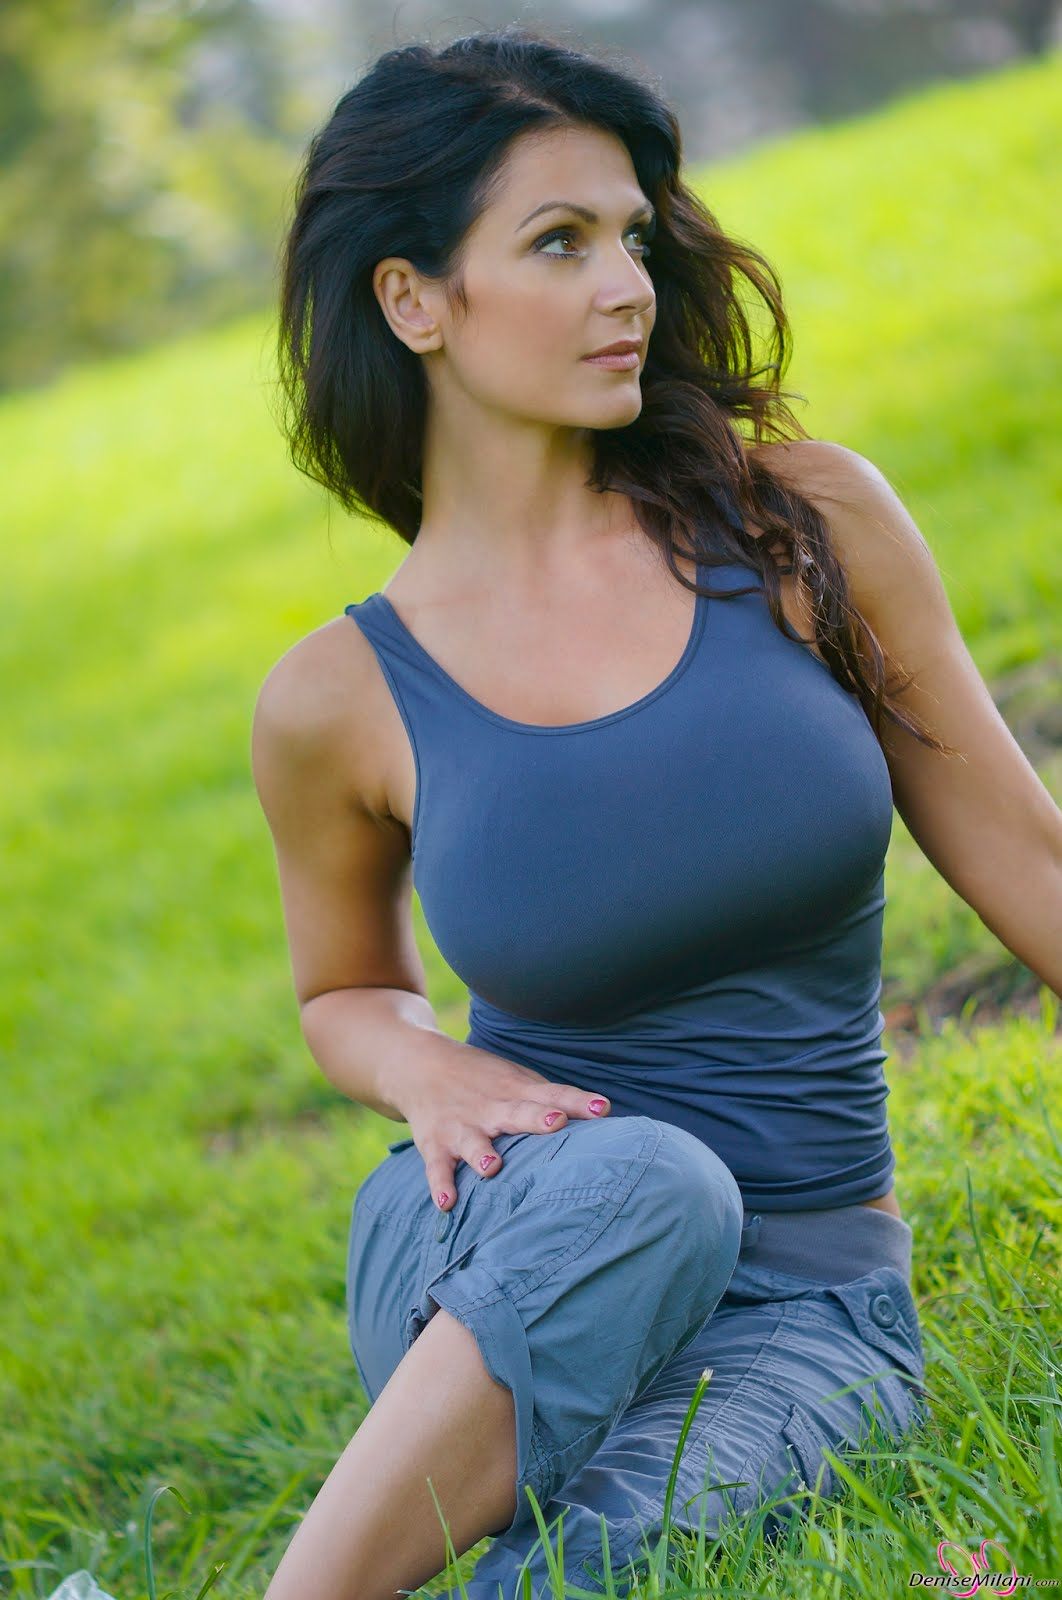 Cute Denise Milani latest HD Photoshoot in Park | Gallery ...